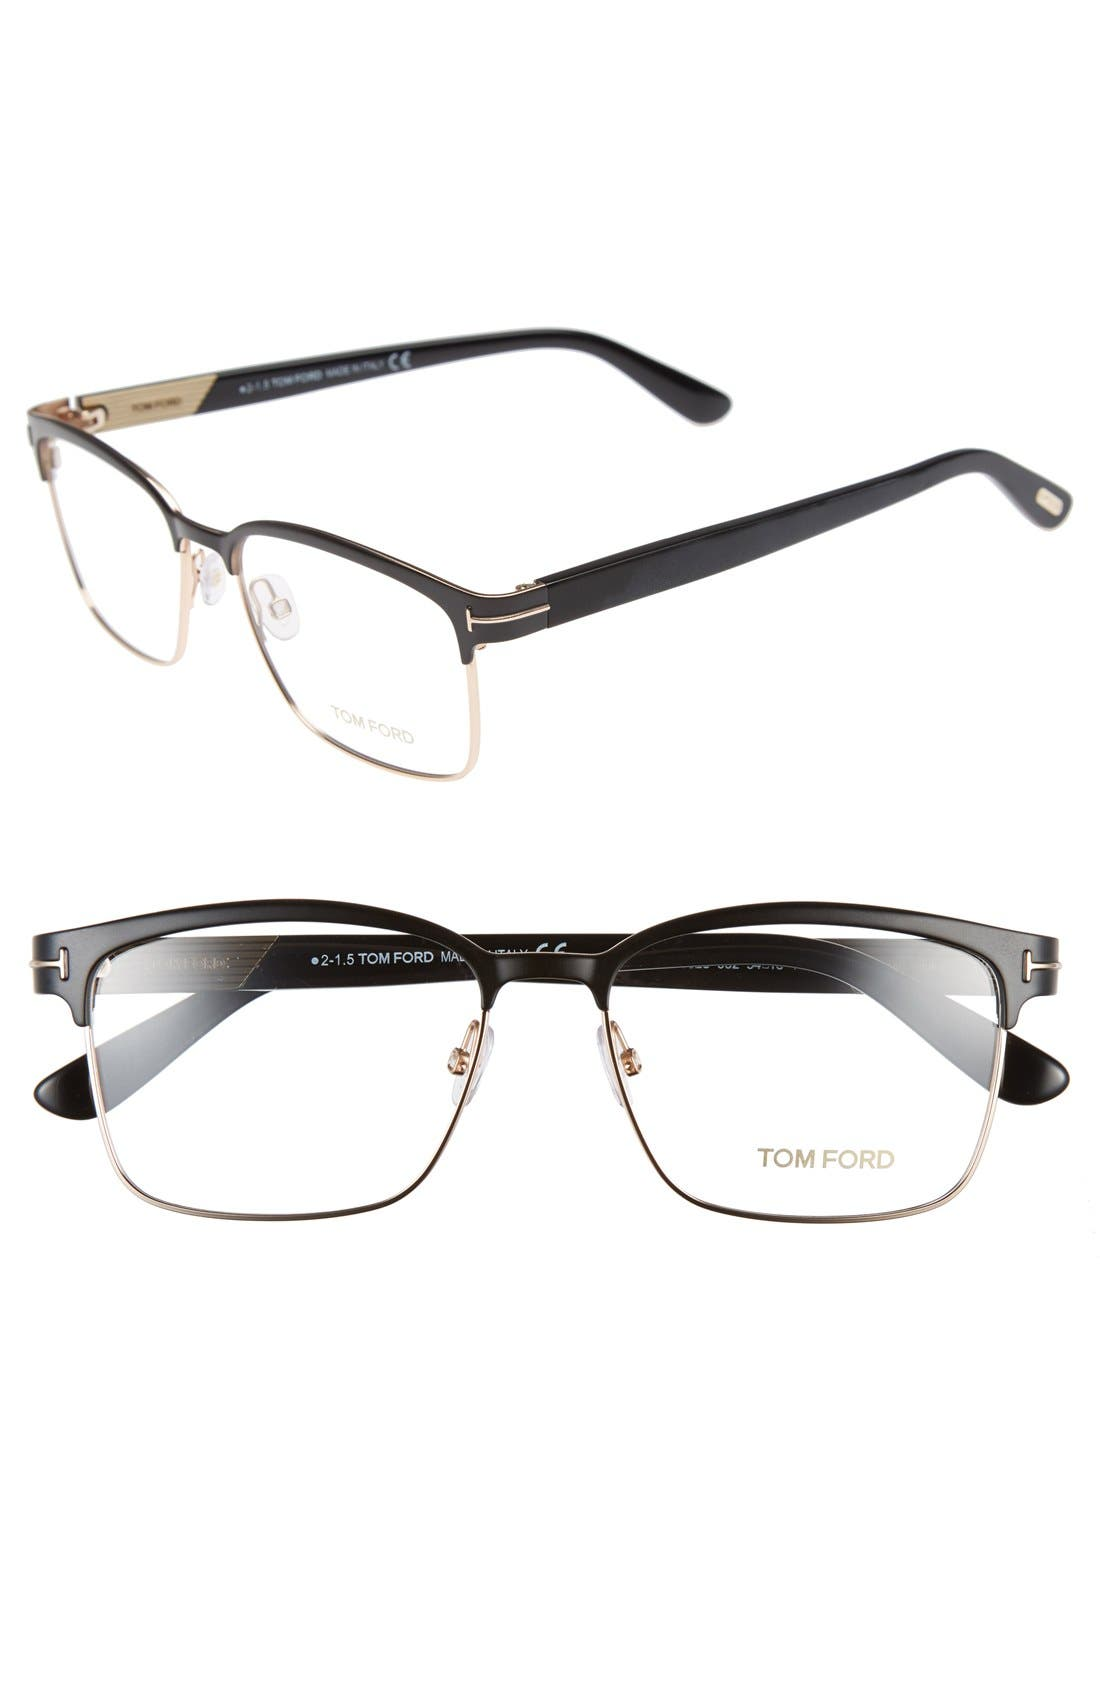 54mm Optical Glasses,                             Main thumbnail 1, color,                             MATTE BLACK/ SHINY ROSE GOLD